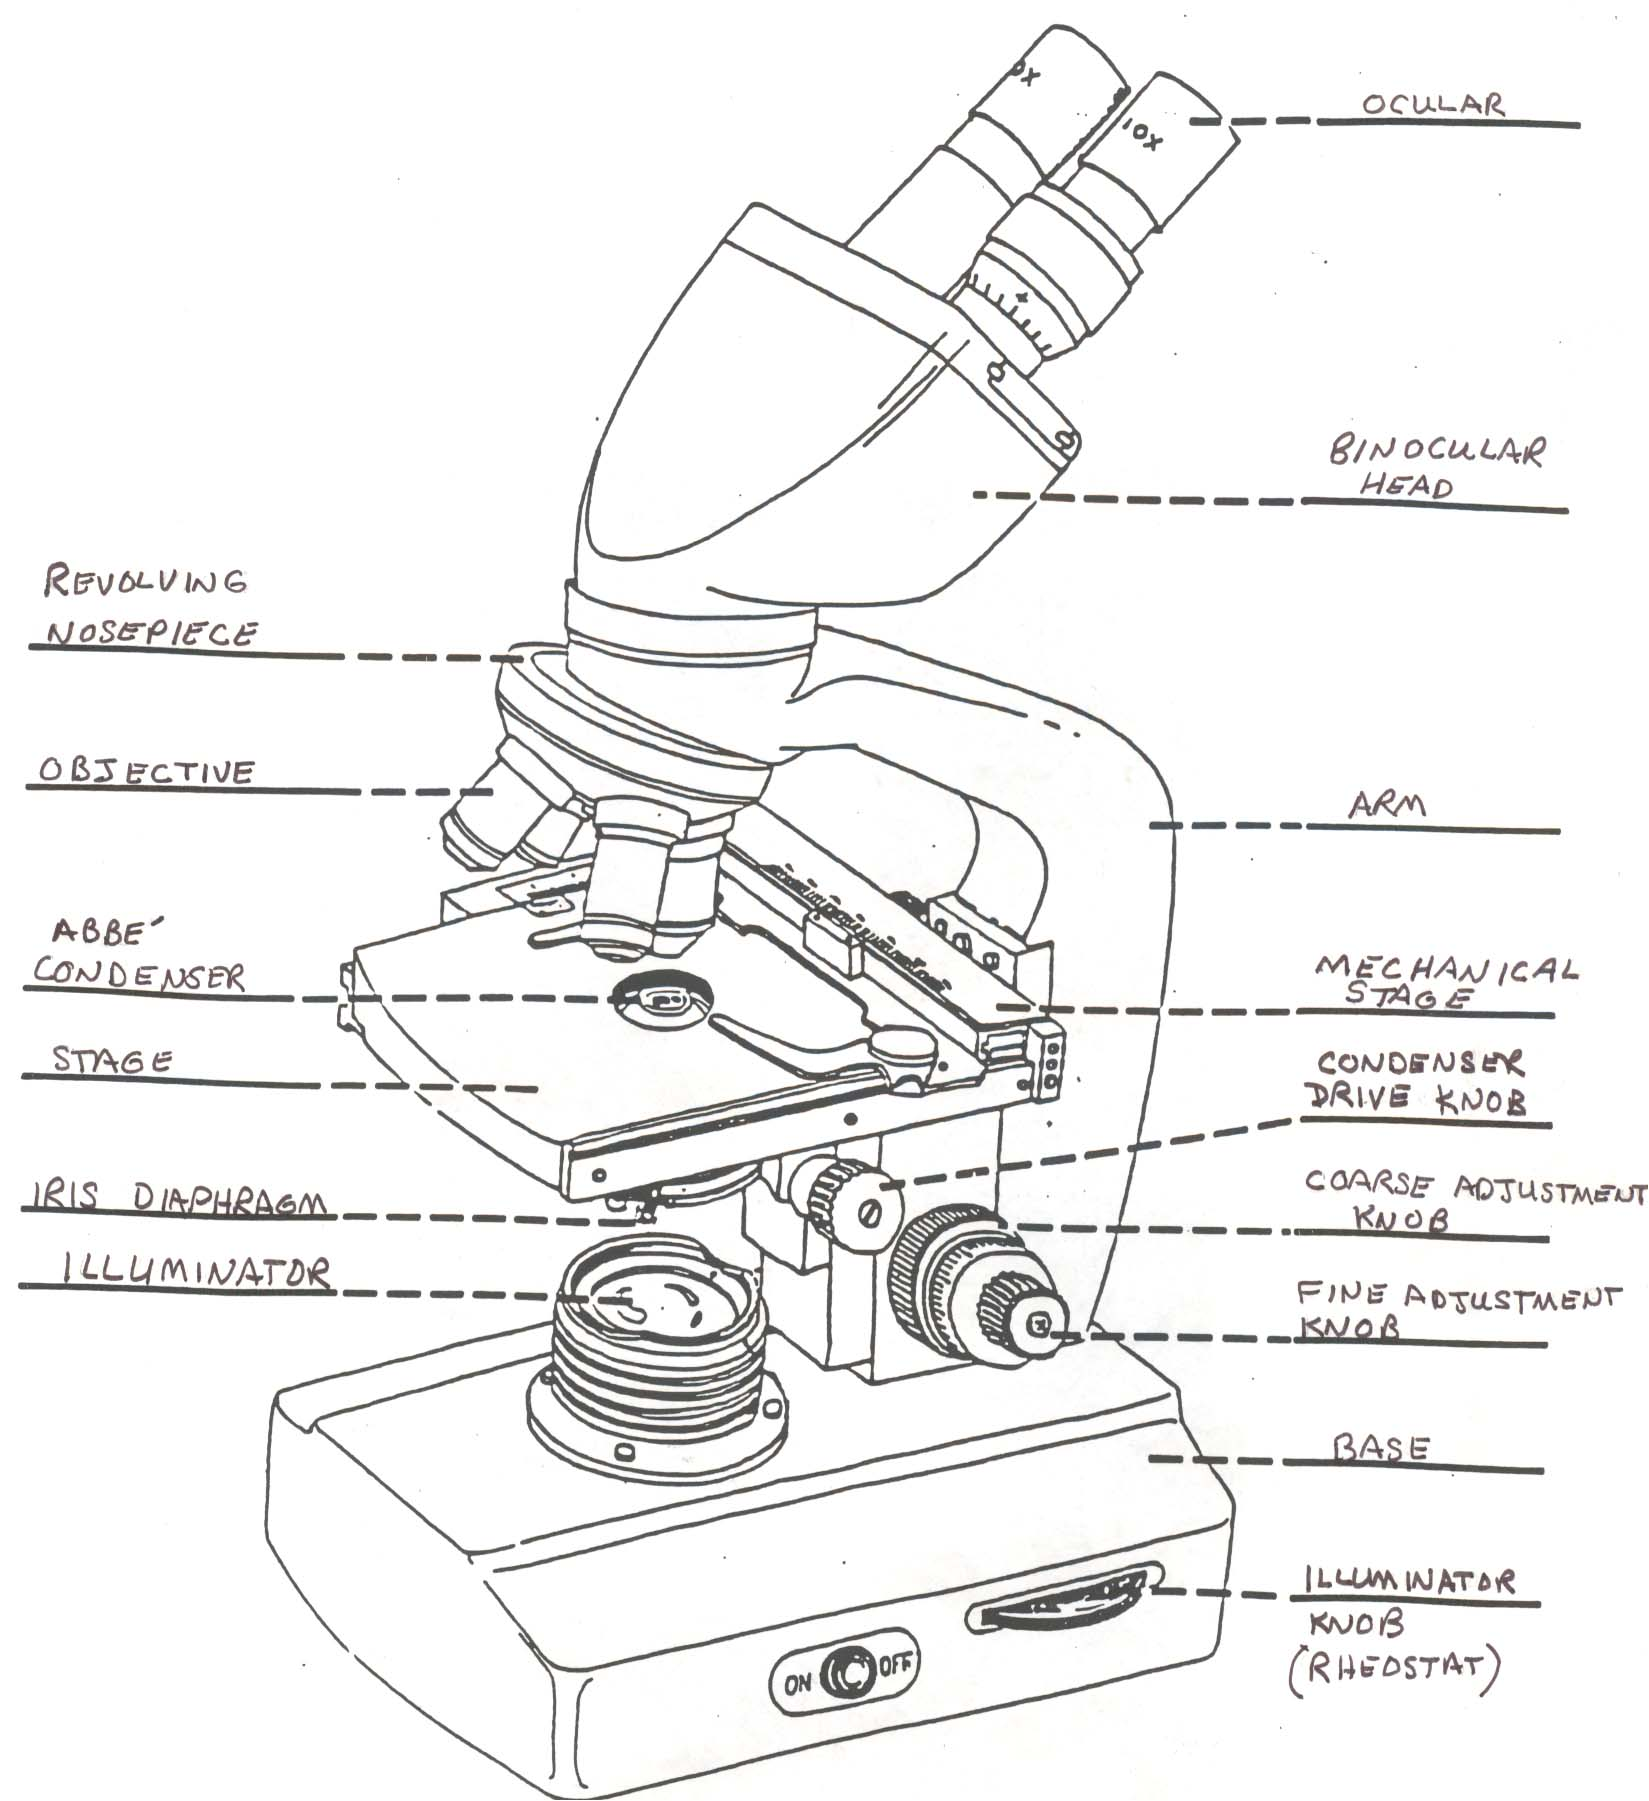 Worksheets Microscope Lab Worksheet worksheet microscope lab mytourvn study site sfcc biology 160 documents drawing labeled